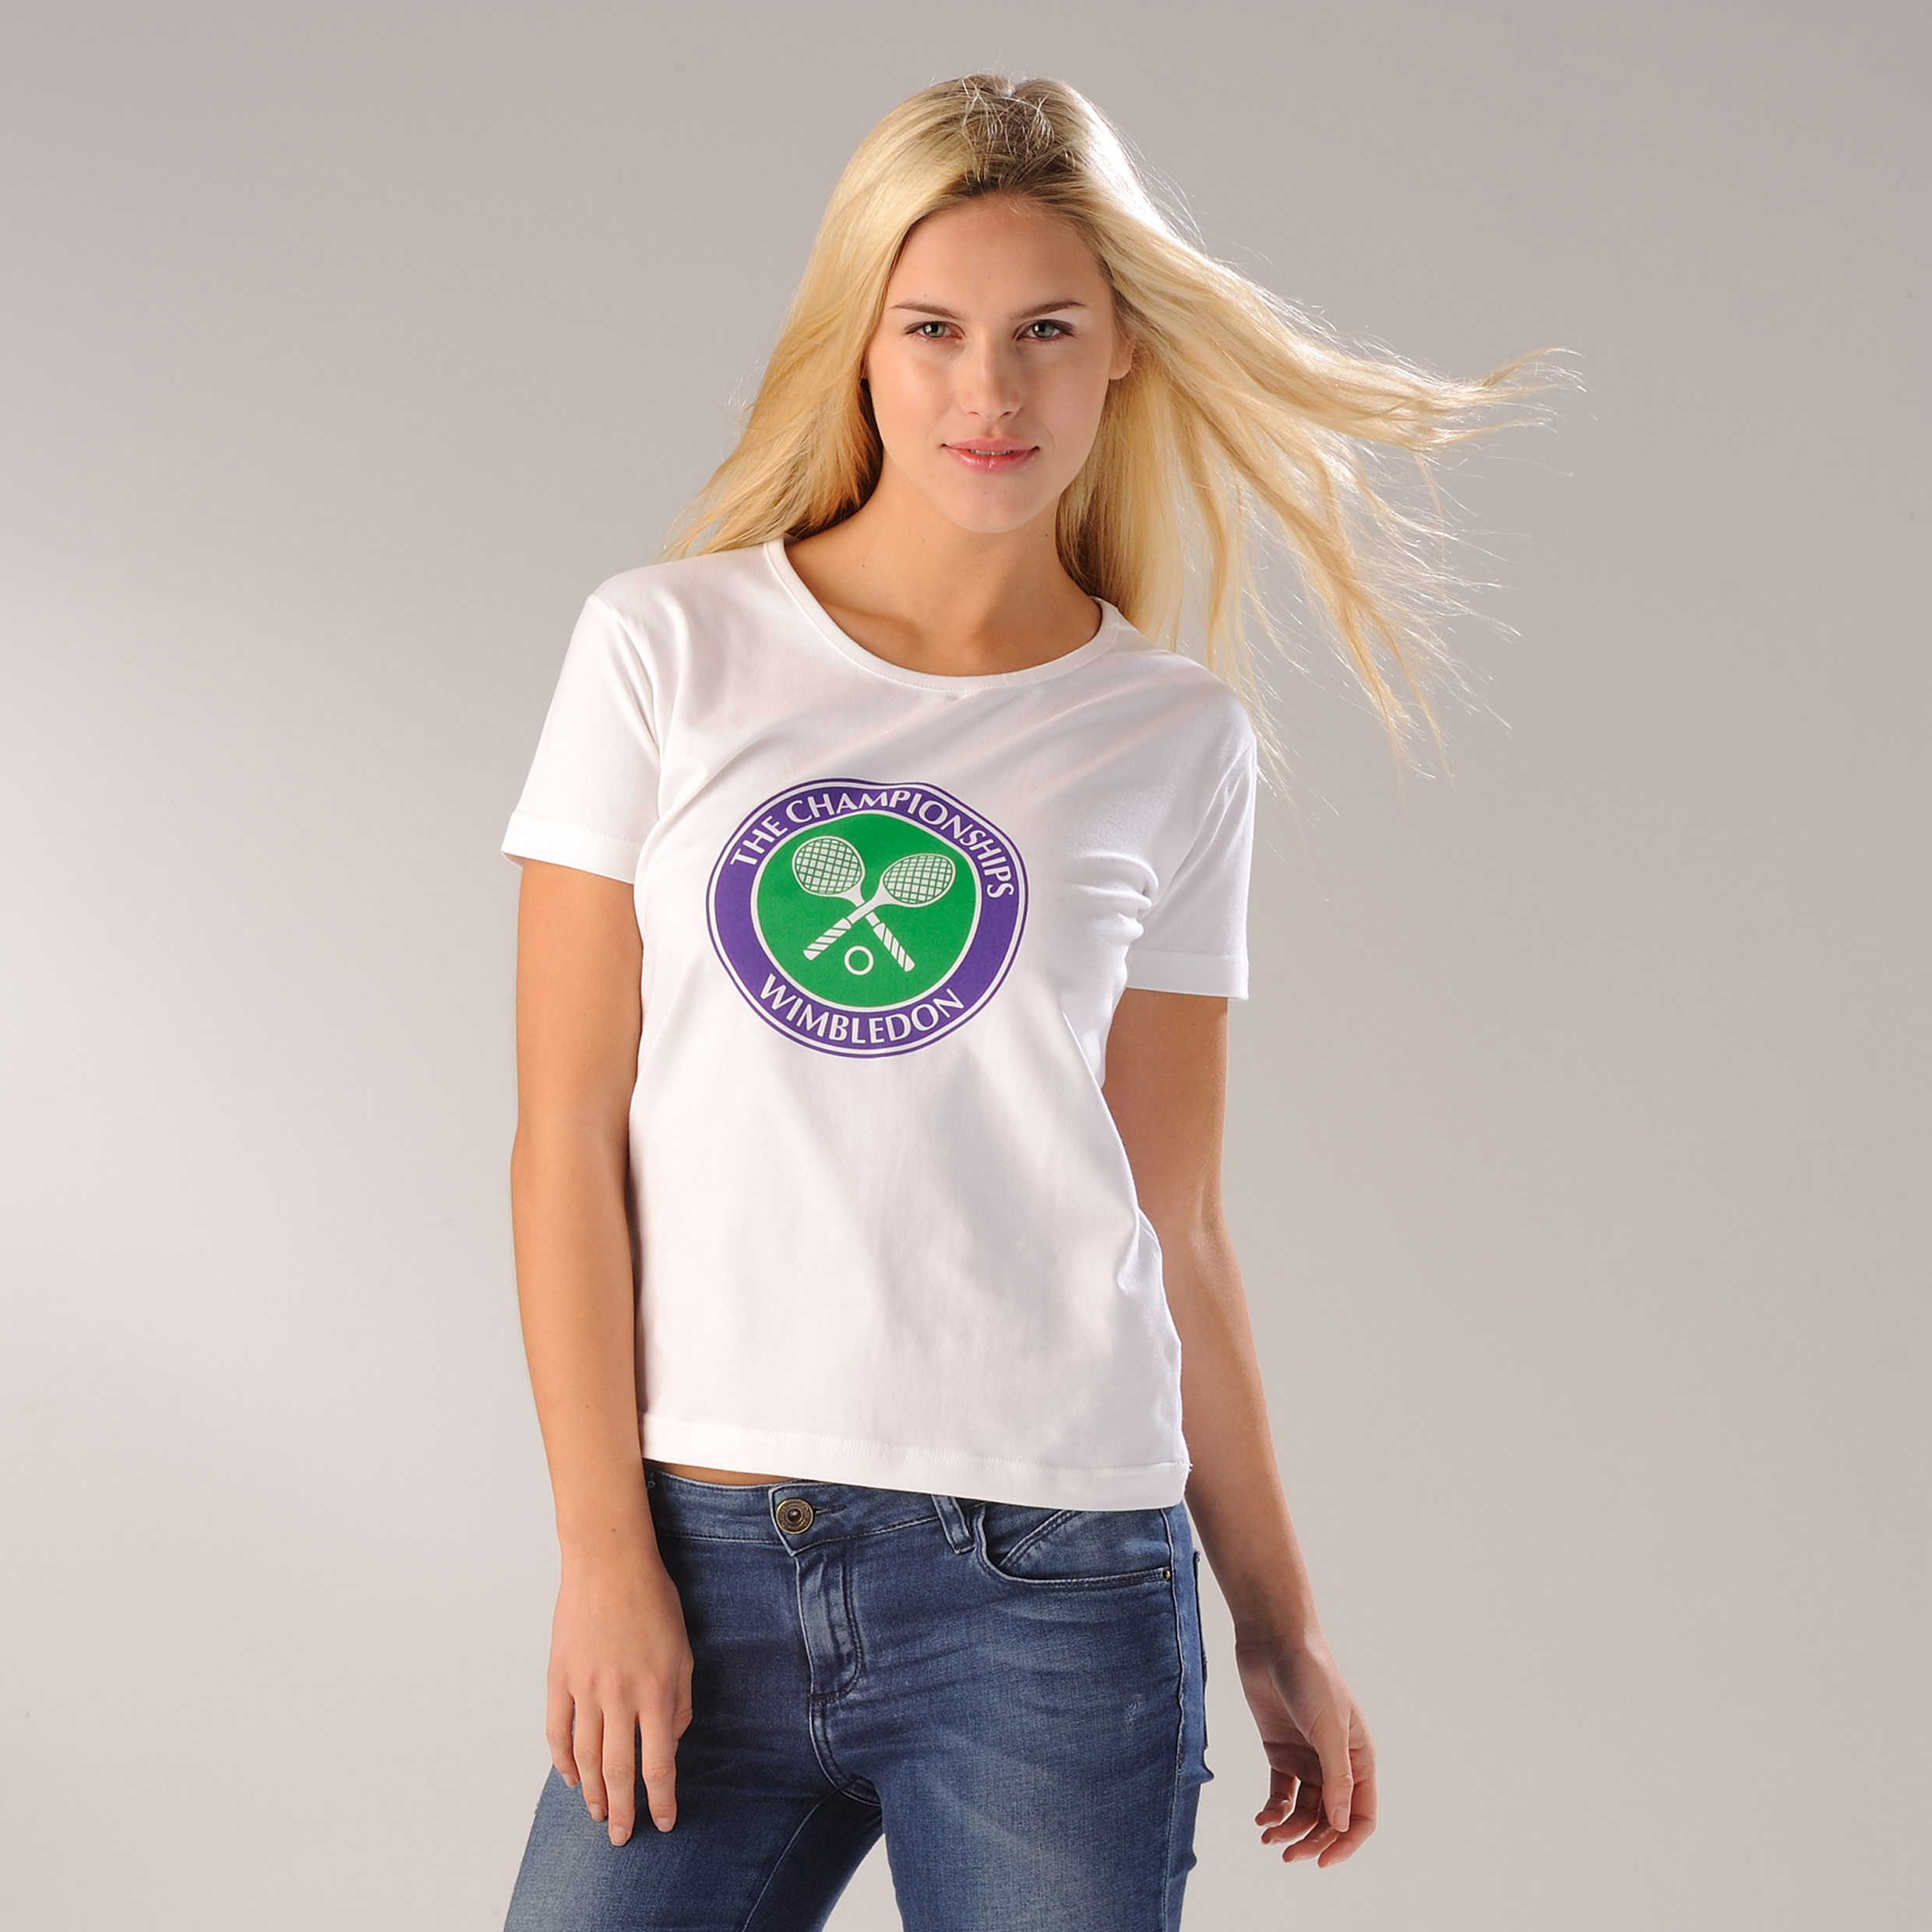 Wimbledon Crossed Rackets Print T-Shirt - White - Womens